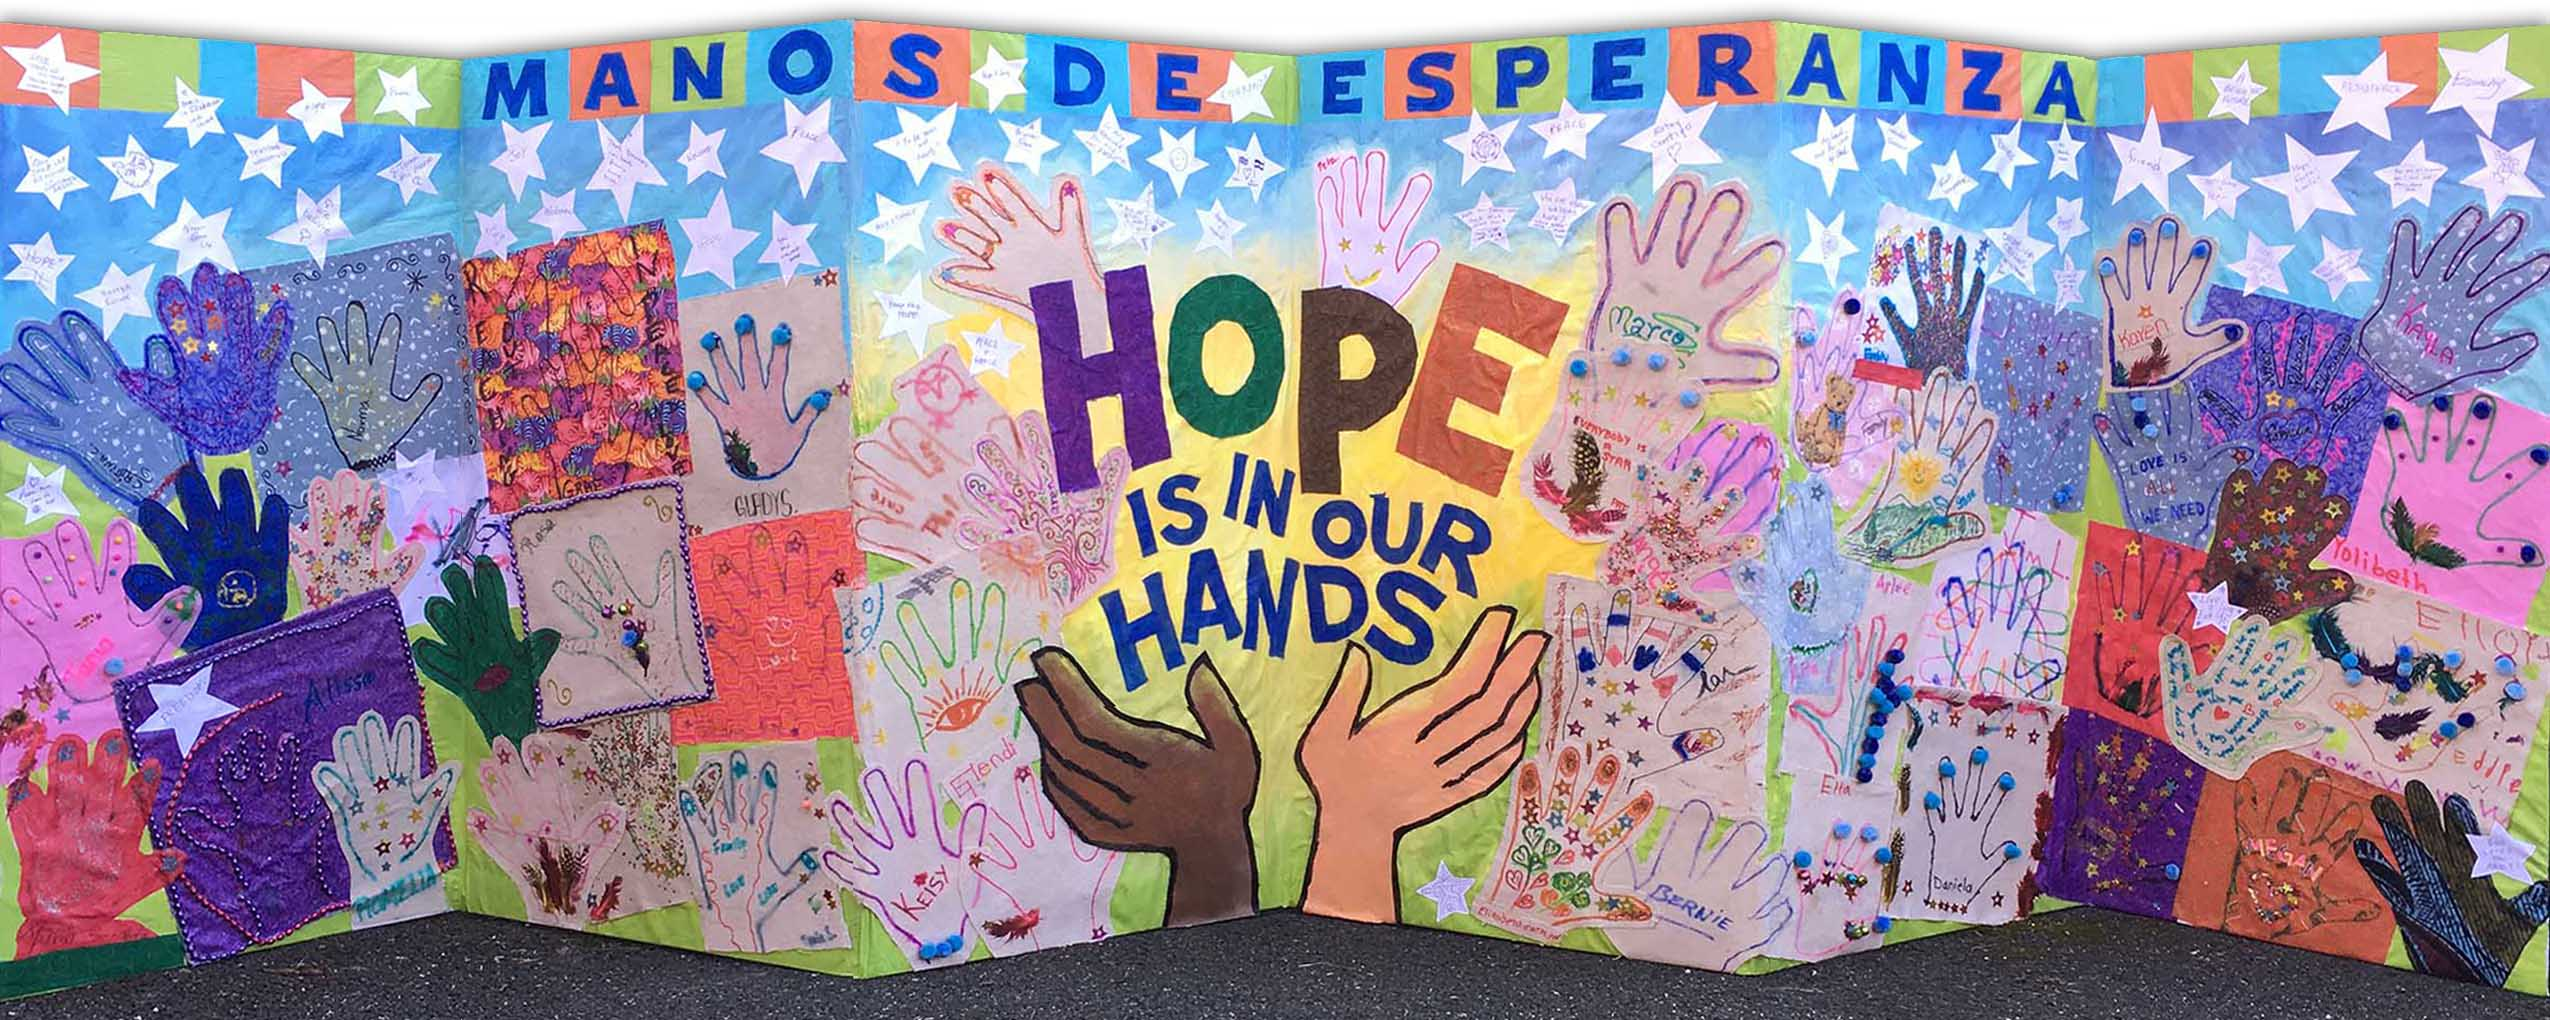 Hands of Hope Banner